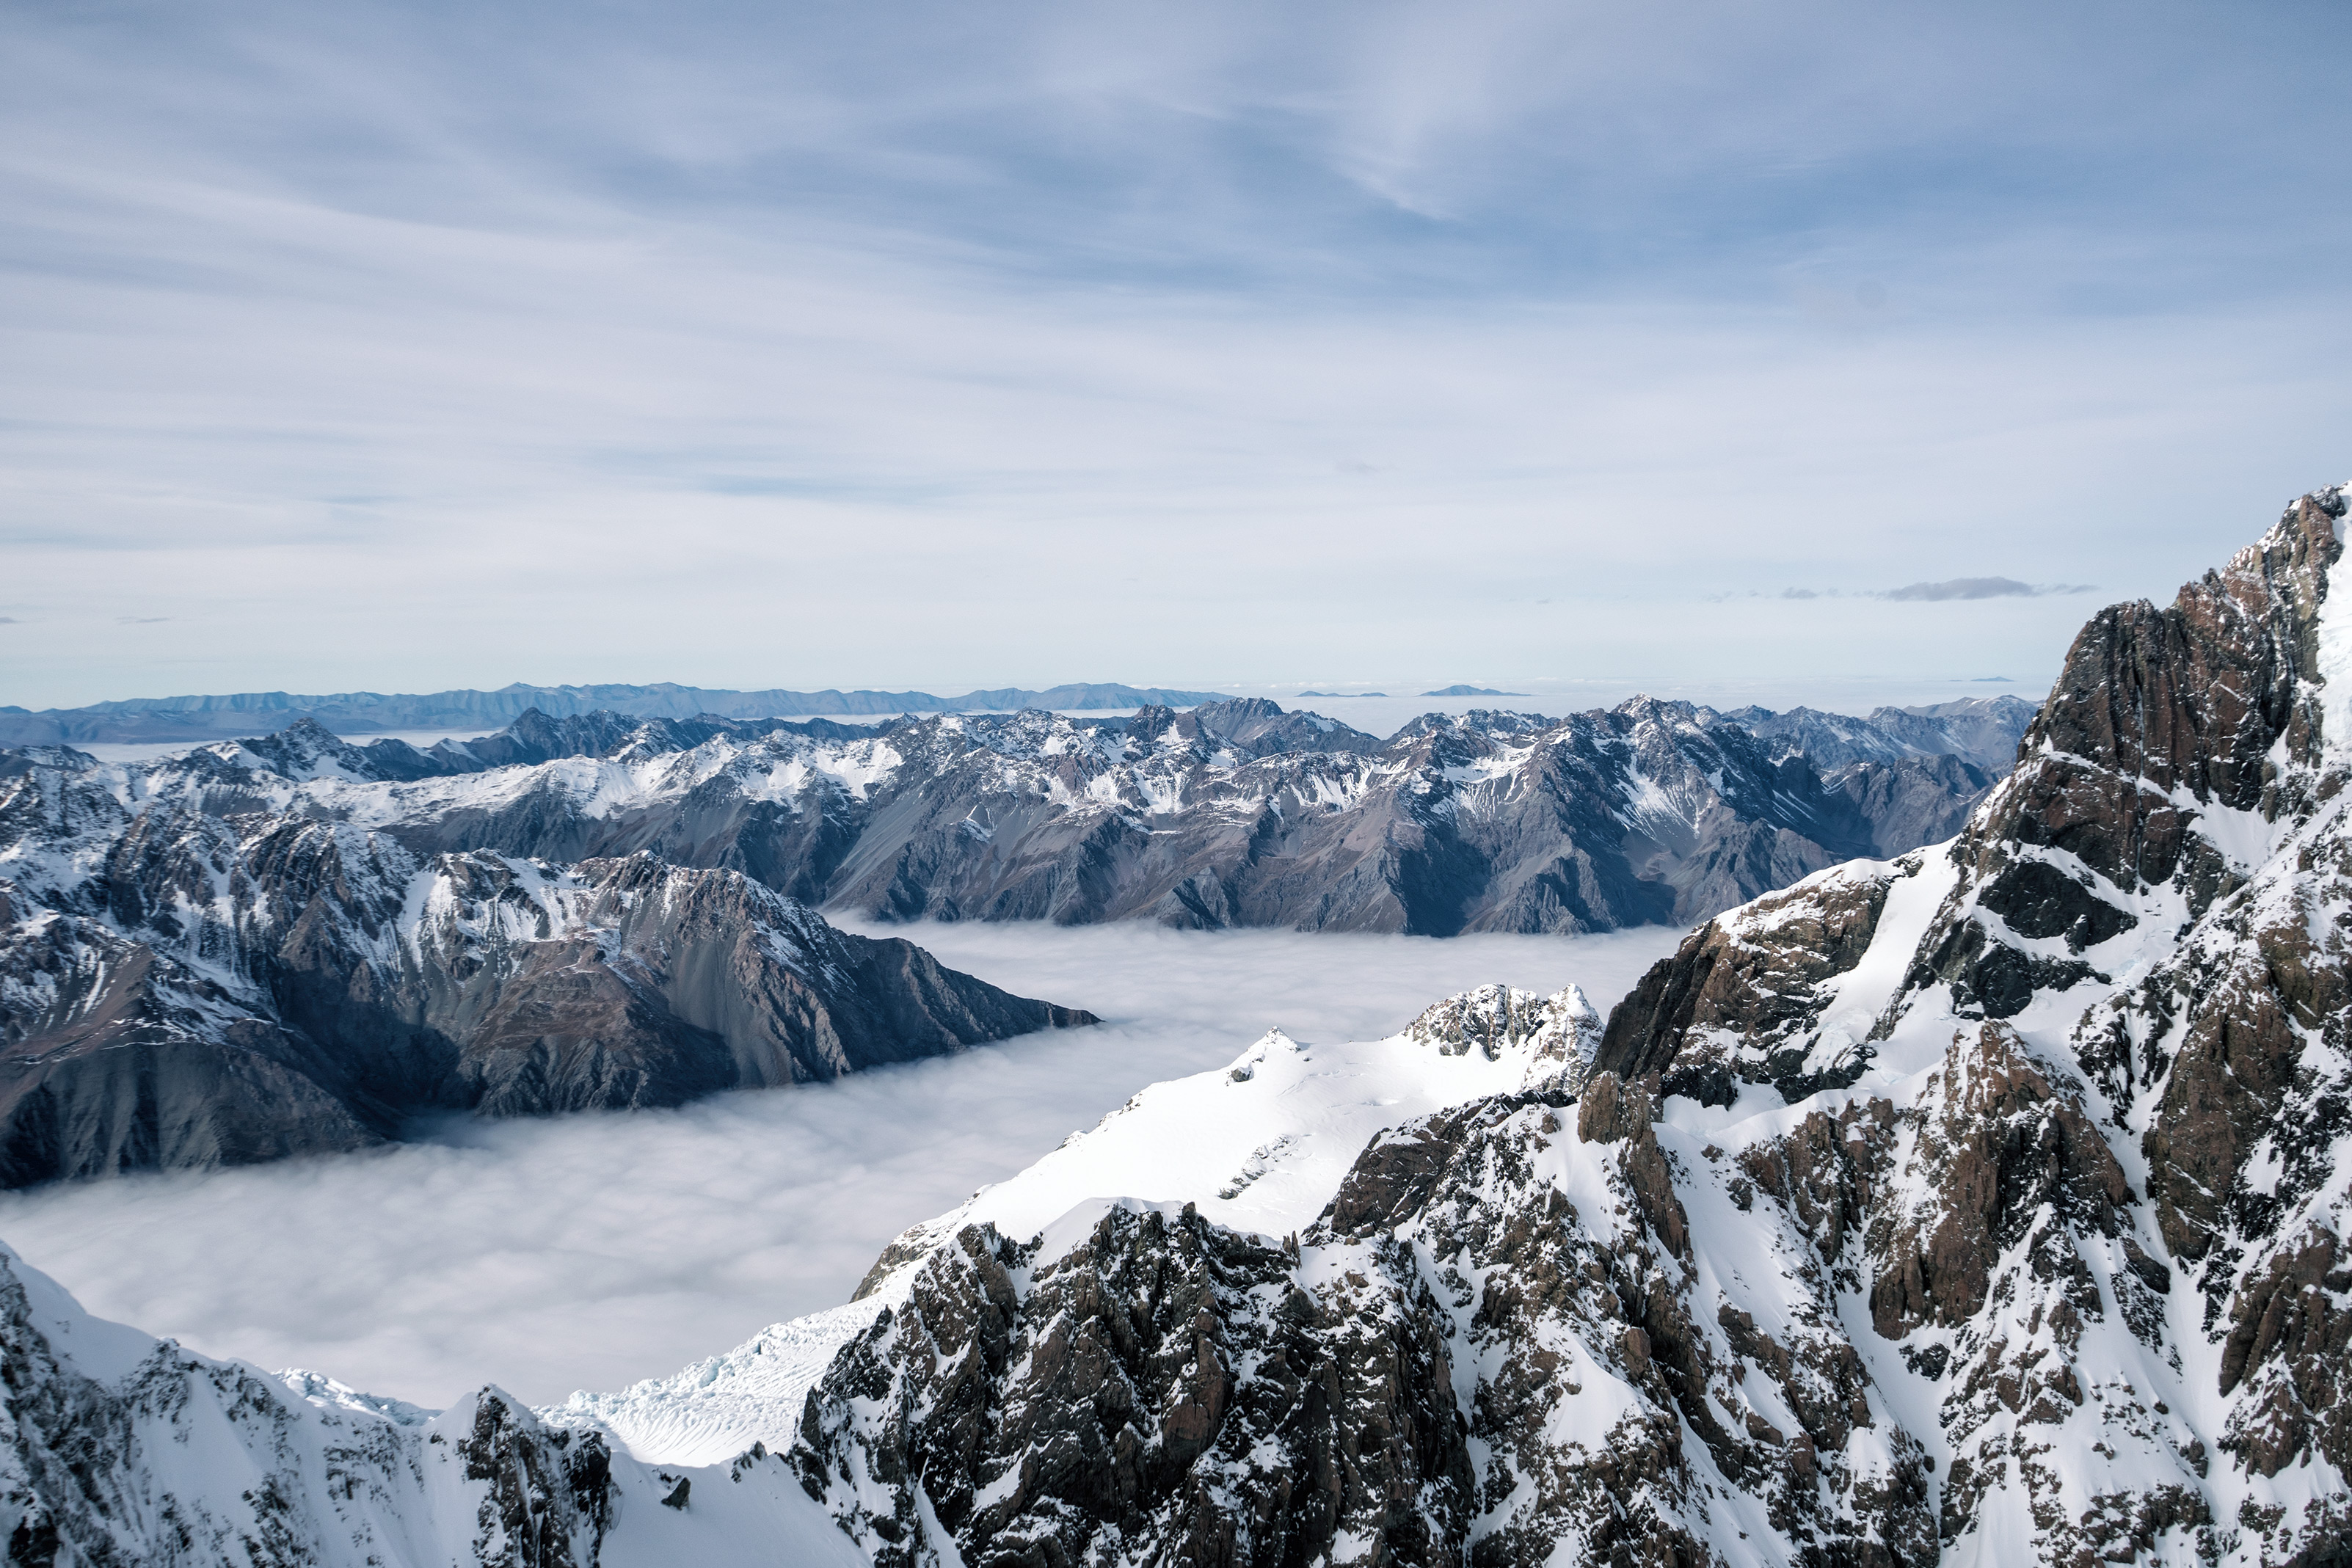 Southern Alps From Above Mountains And Clouds View